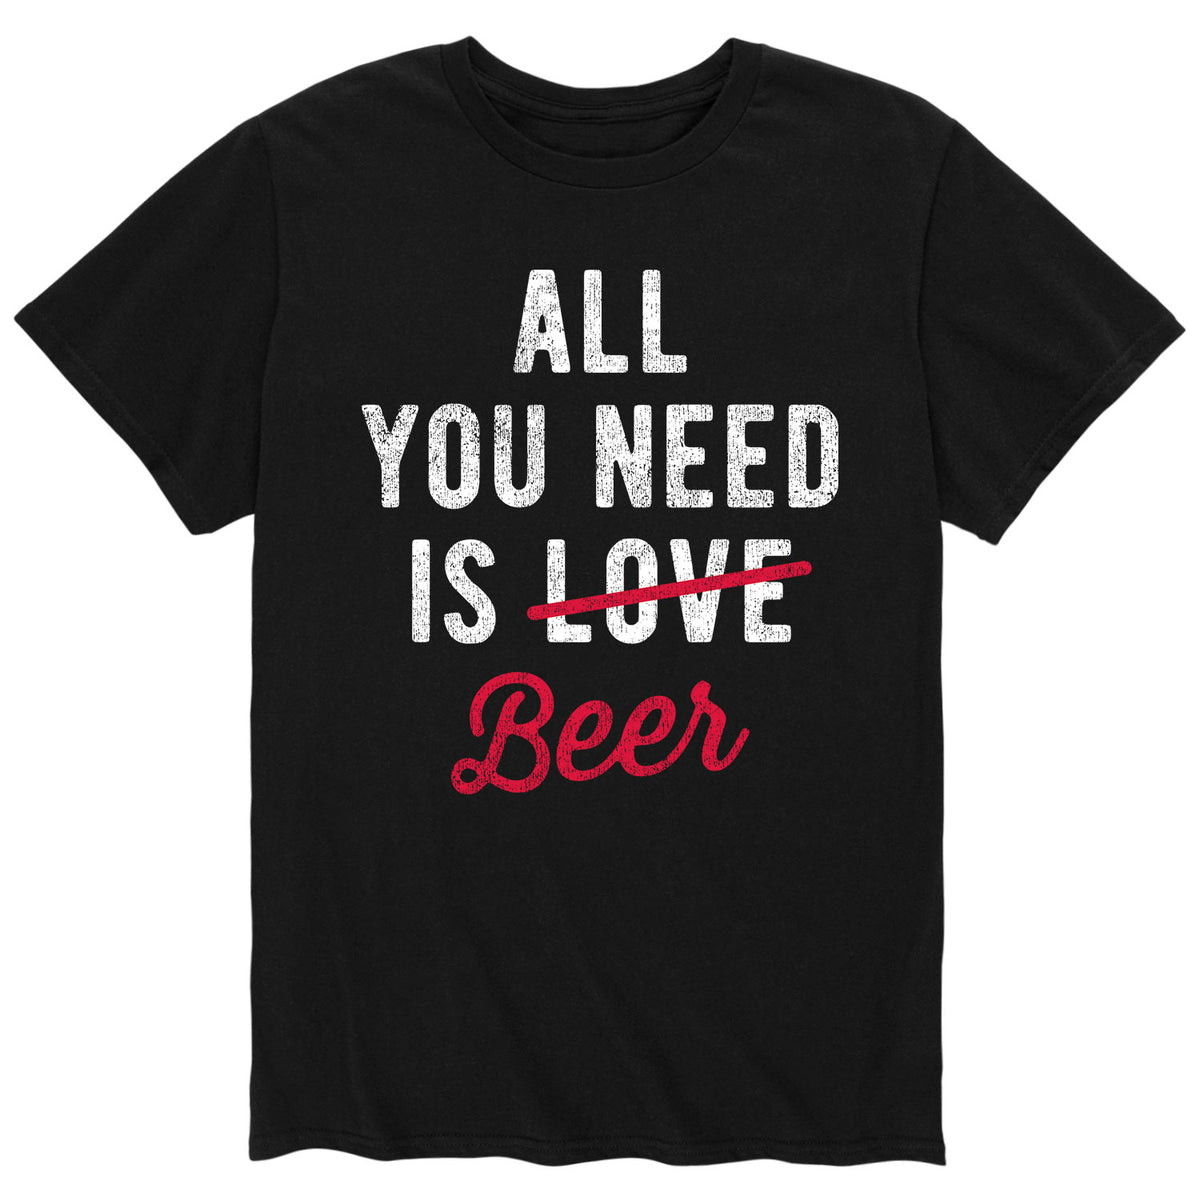 All You Need Is Beer - Men's Short Sleeve T-Shirt